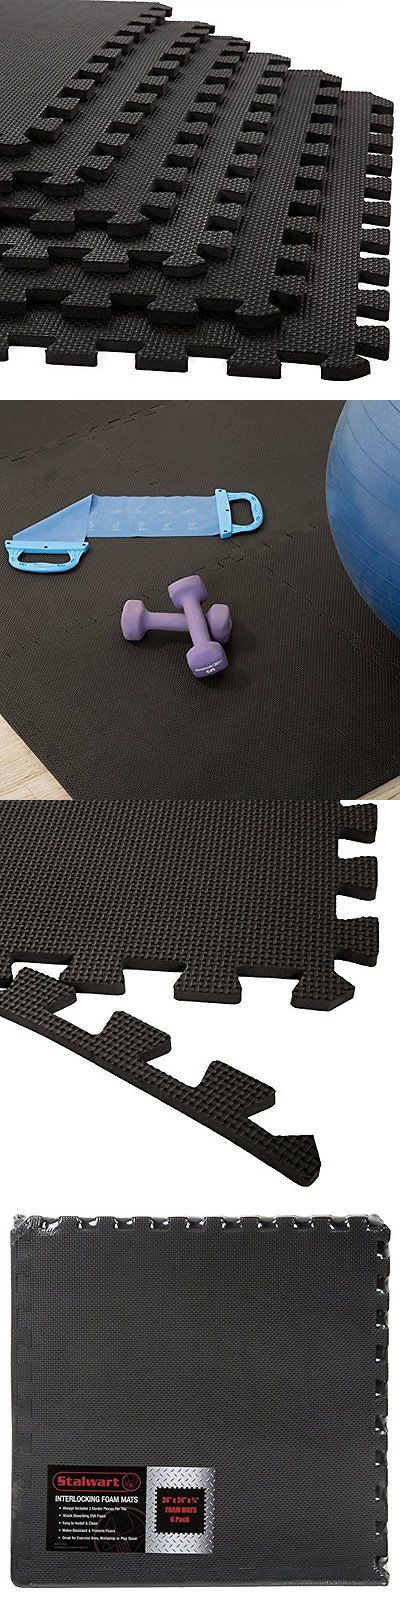 Exercise Mats Exercise Floor Mat Rug Gym Pad Fitness Puzzle - Weight lifting floor pads